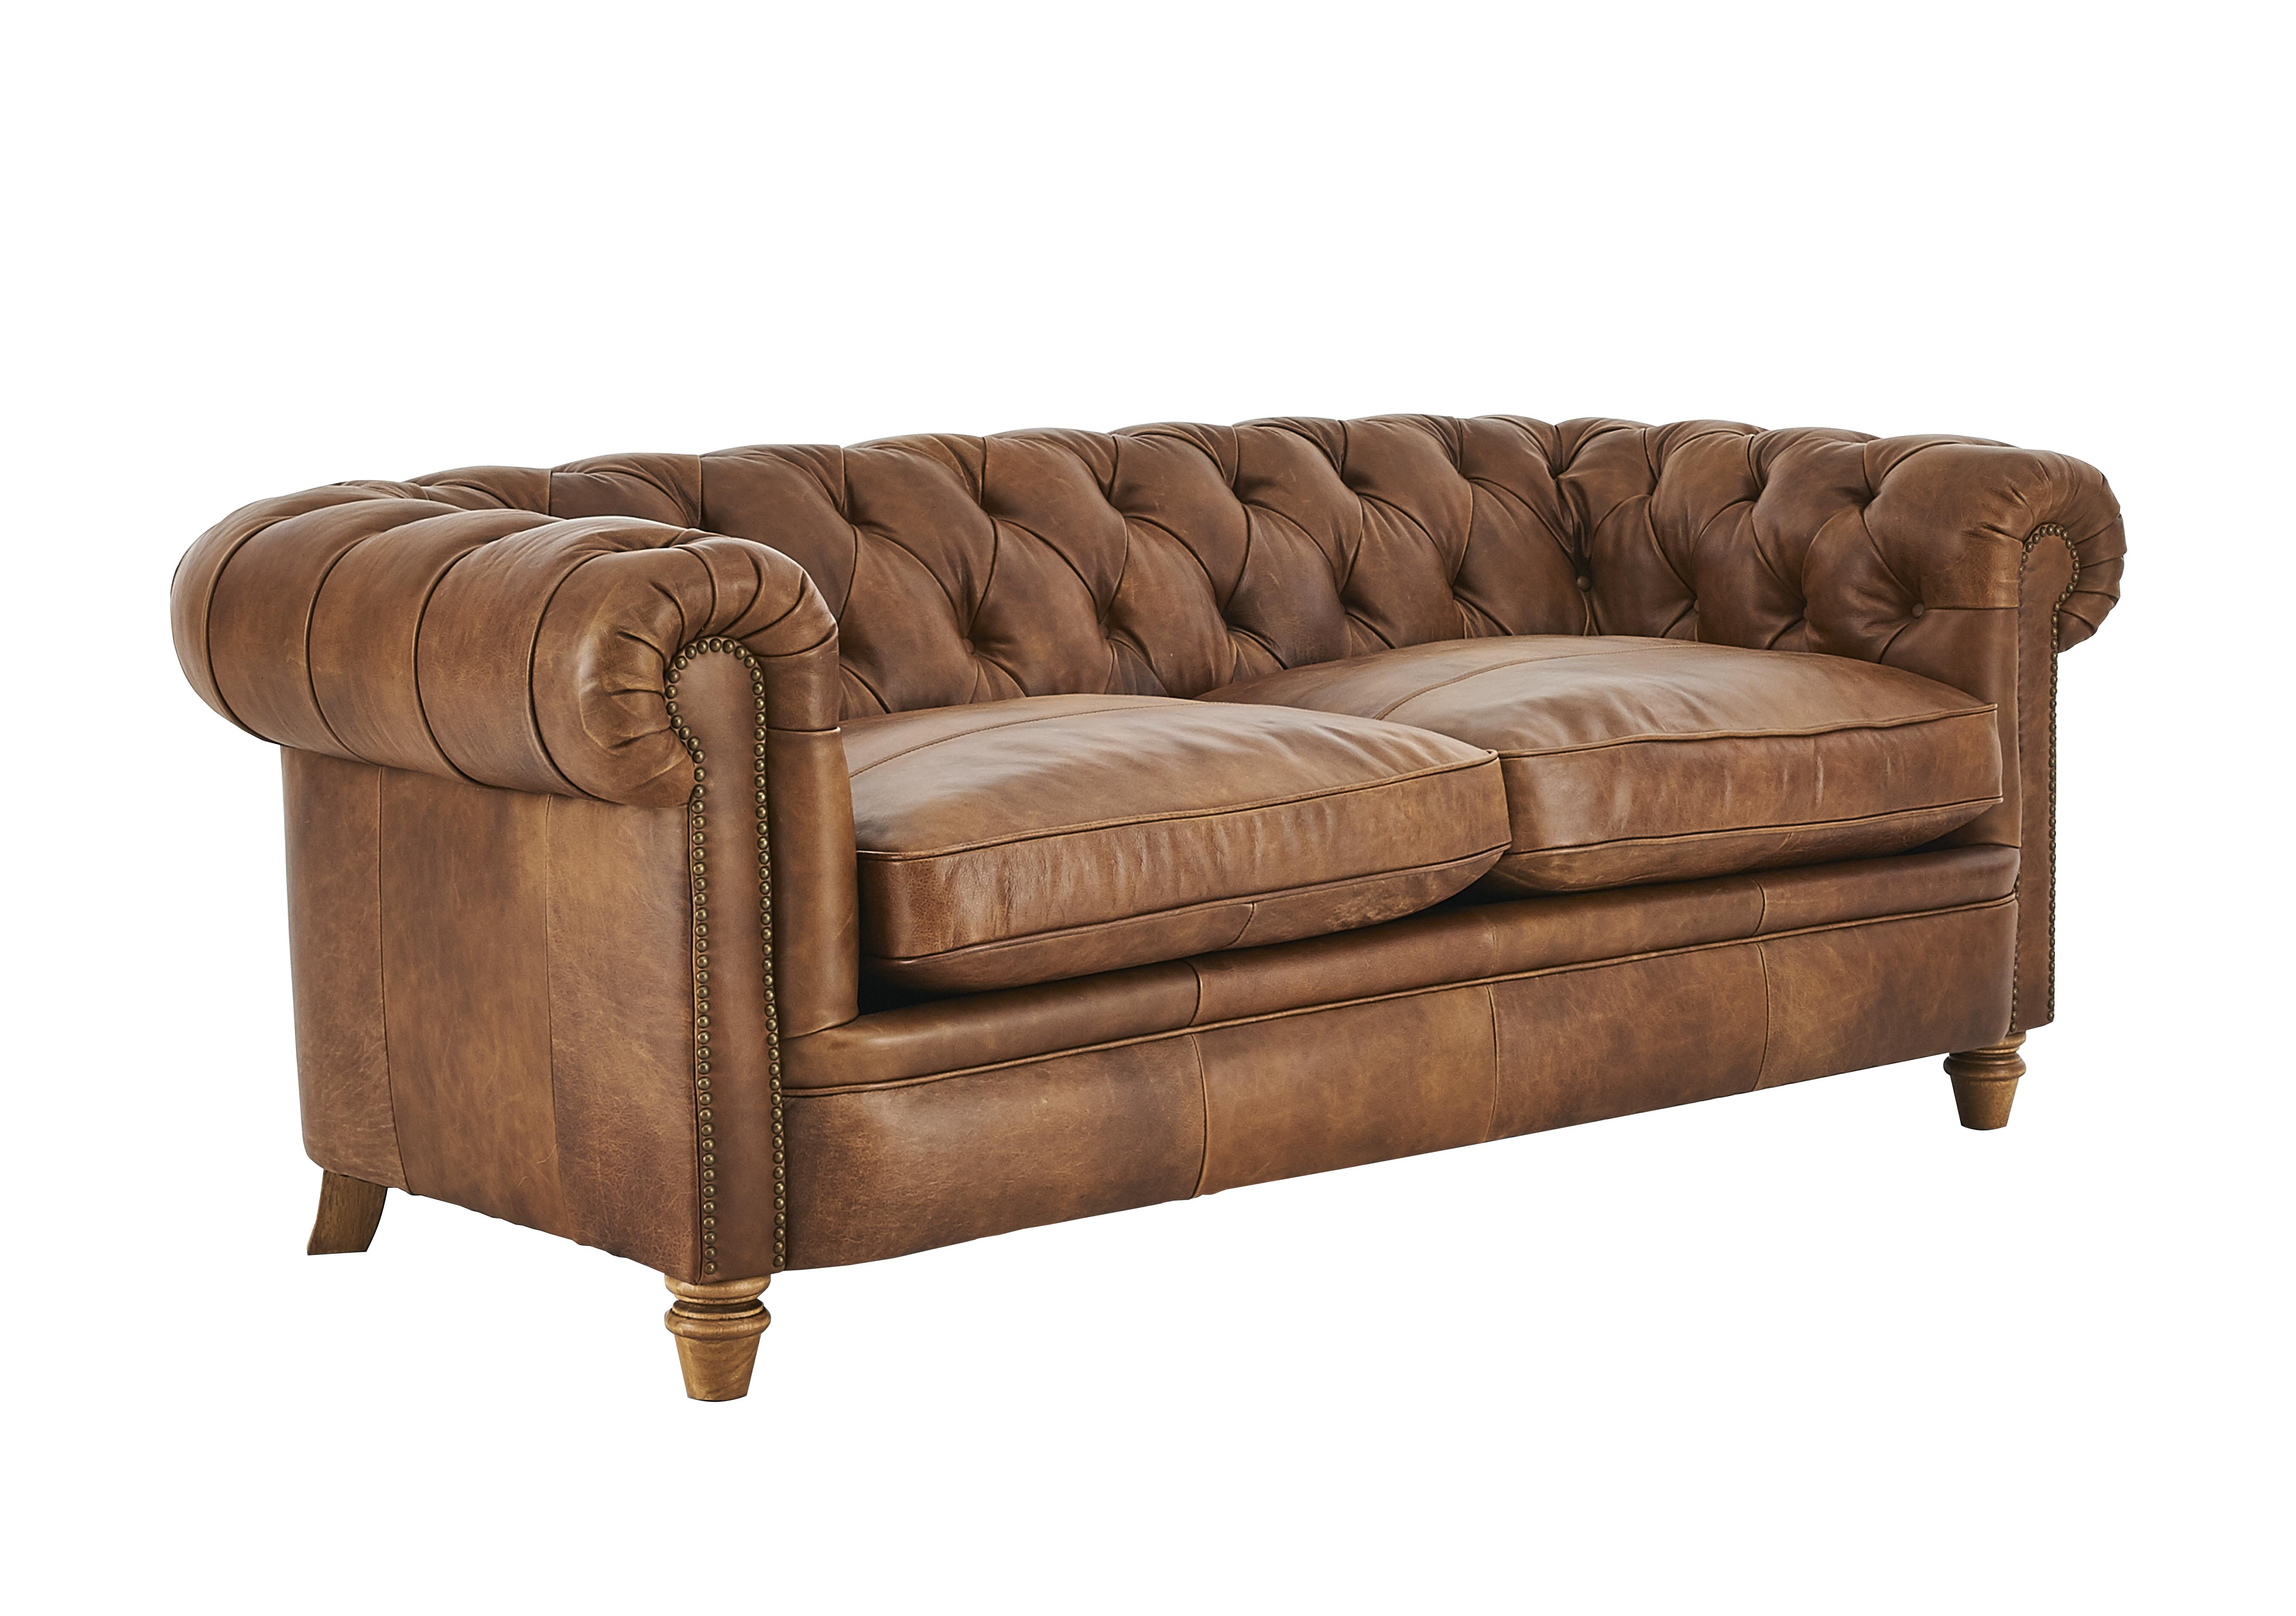 New England Newport 3 Seater Leather Sofa   Alexander And James   Furniture  Village